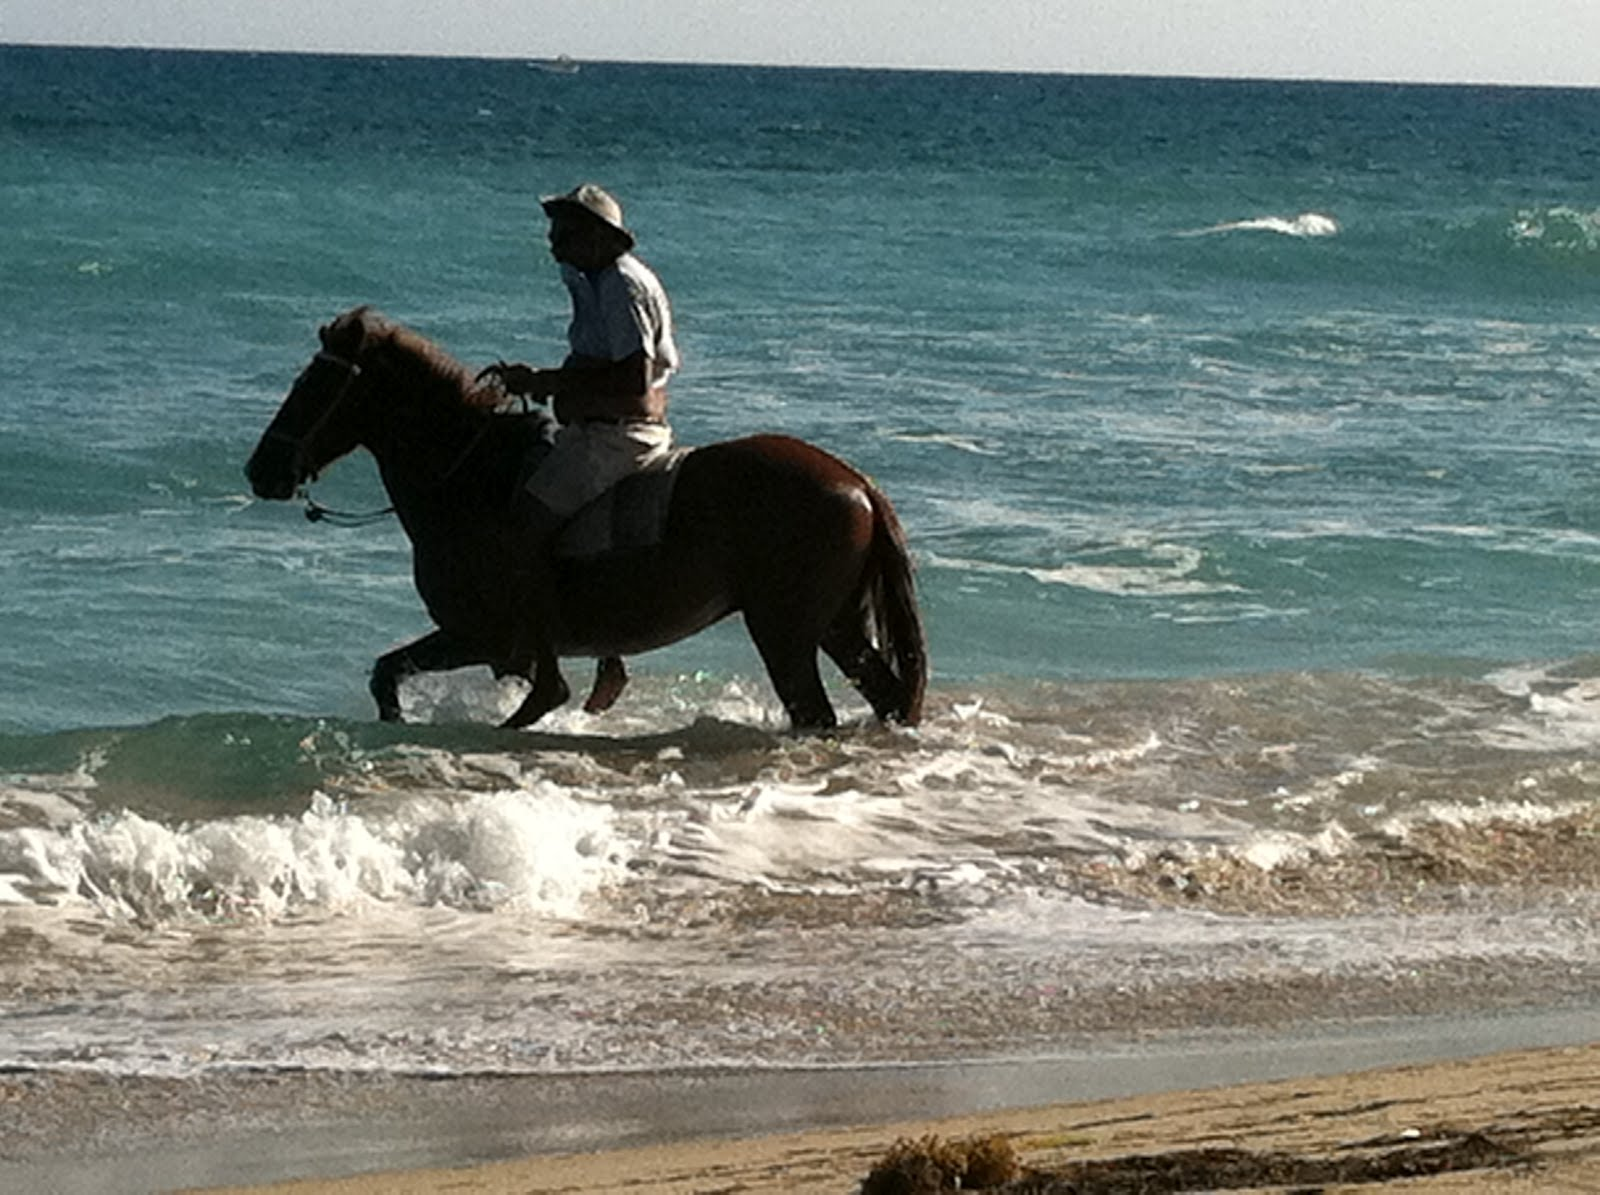 the gallery for gt wild horses galloping on the beach